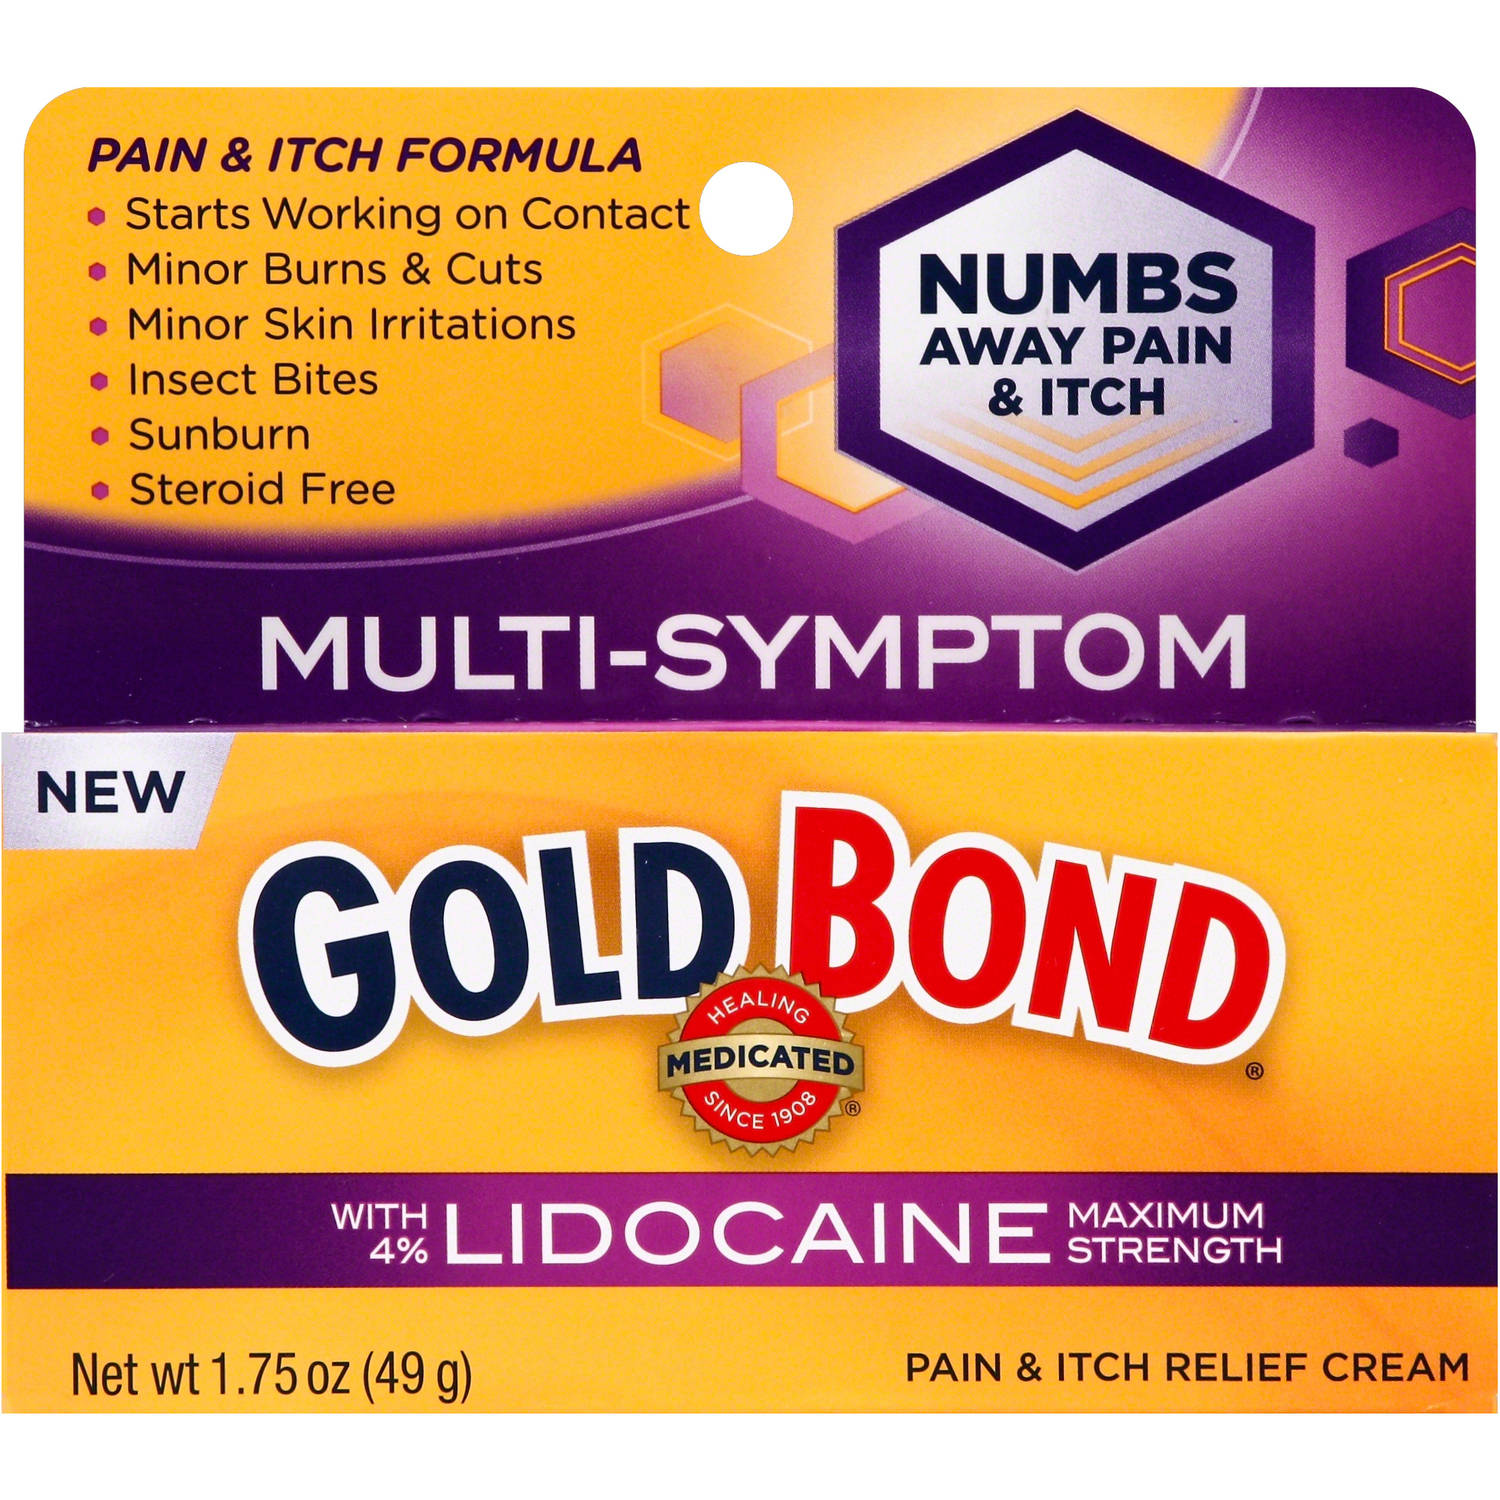 Gold Bond Multi-Symptom Pain & Itch Relief Cream, 1.75 oz